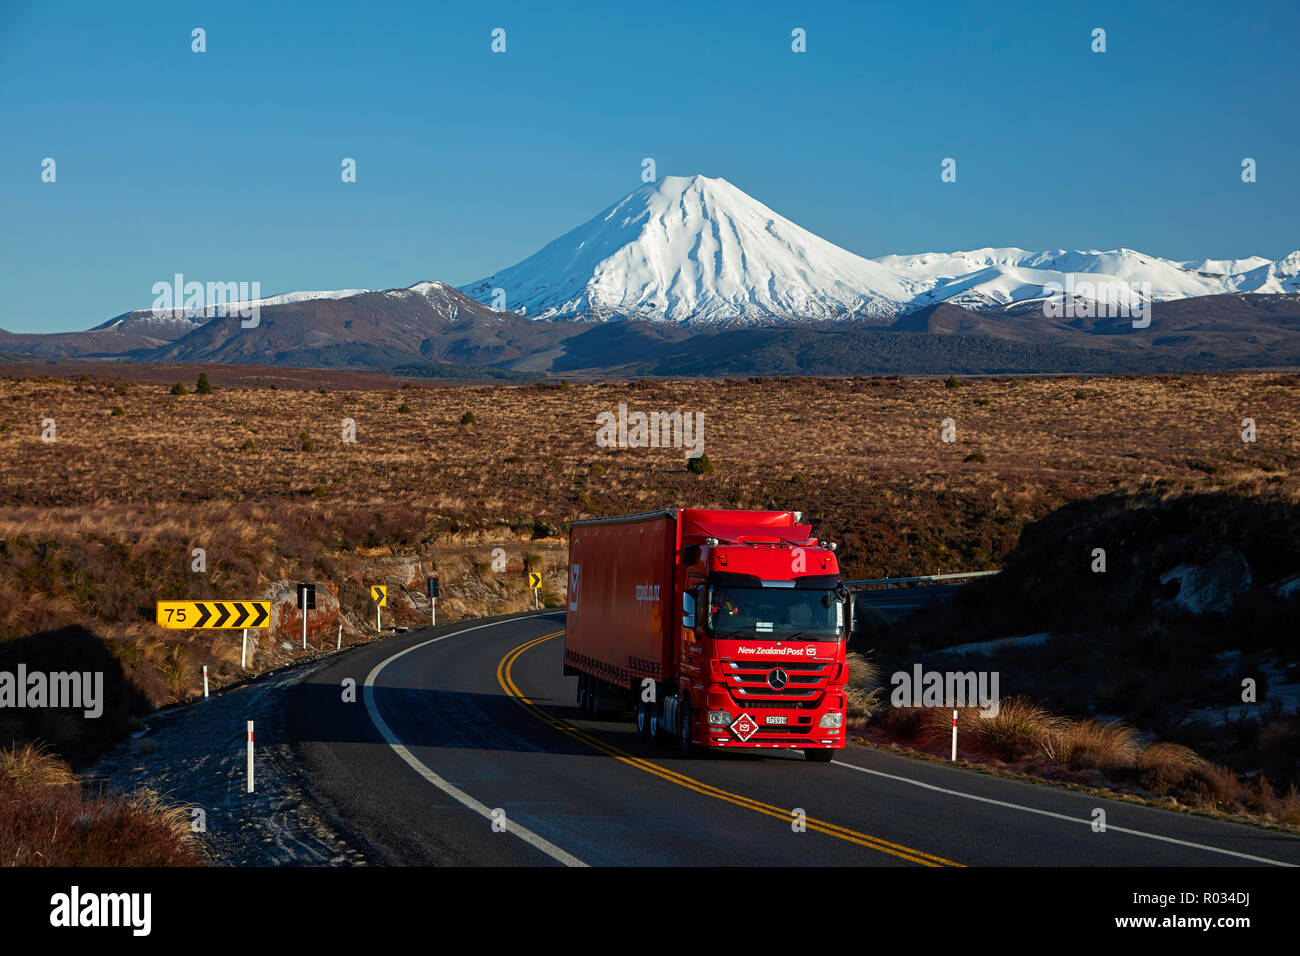 Mt Ngauruhoe and NZ Post truck on Desert Road, Tongariro National Park, Central Plateau, North Island, New Zealand - Stock Image